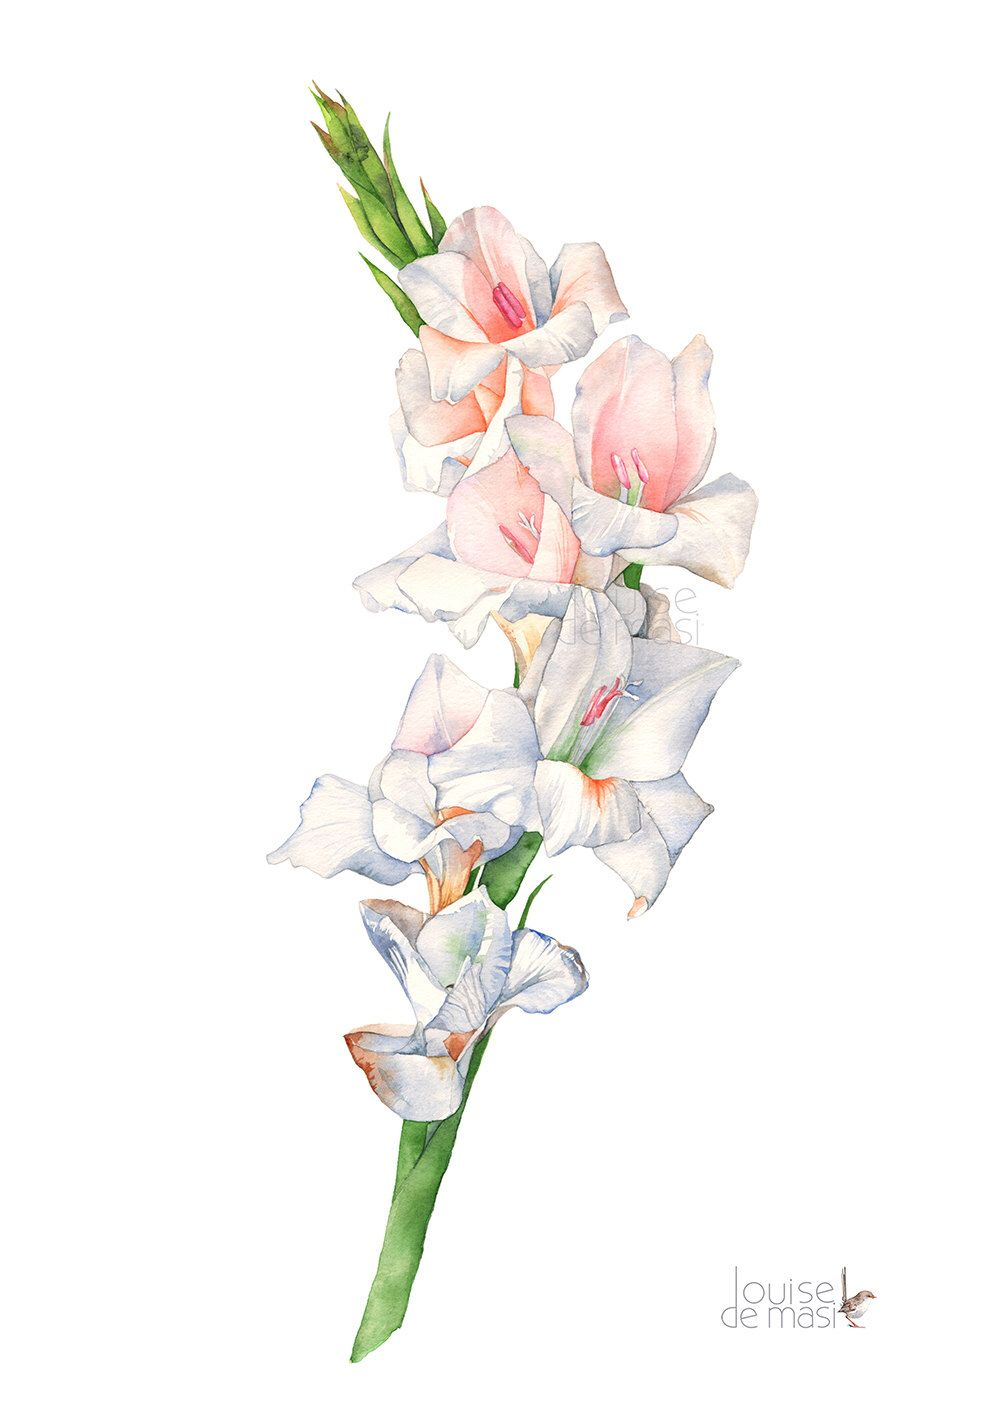 Gladiolus Watercolour Painting Print G17117 A3 Size Print Gladiolus Watercolor Painting Print Gladiolus Print Poppy Painting Flower Drawing Gladiolus Tattoo